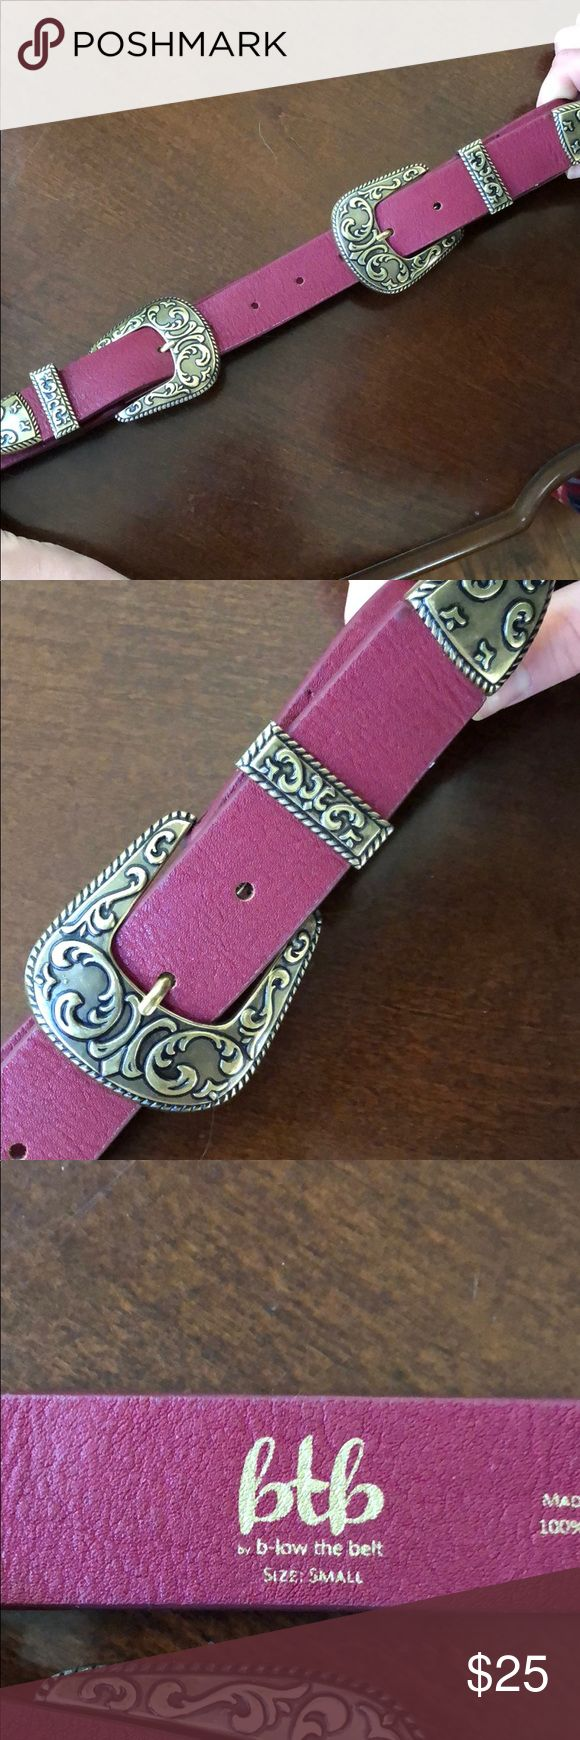 B-Low The Belt Small Double Buckle Belt Super cute, deep red double buckle belt. Size small. Gold hardware. New without tags. B-Low the Belt Accessories Belts